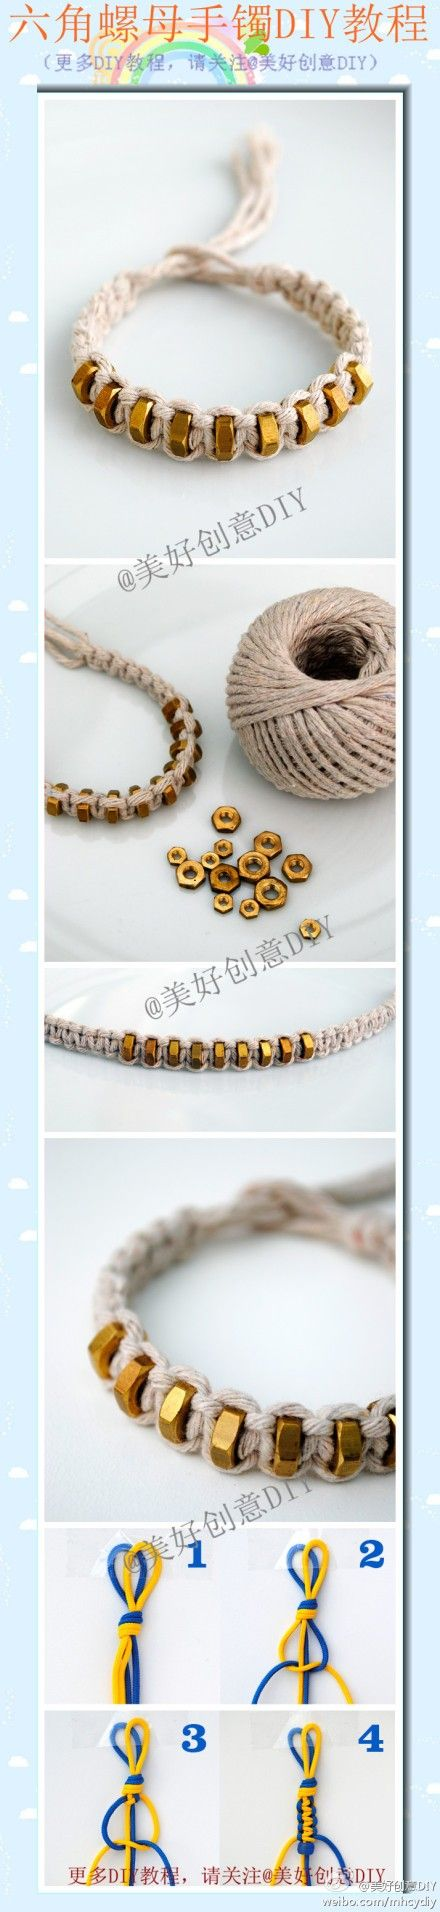 Hex nut bracelet DIY tutorials, great personality it ~ ~ fast to make a try!  - More interesting, please follow @ wonderful creative DIY